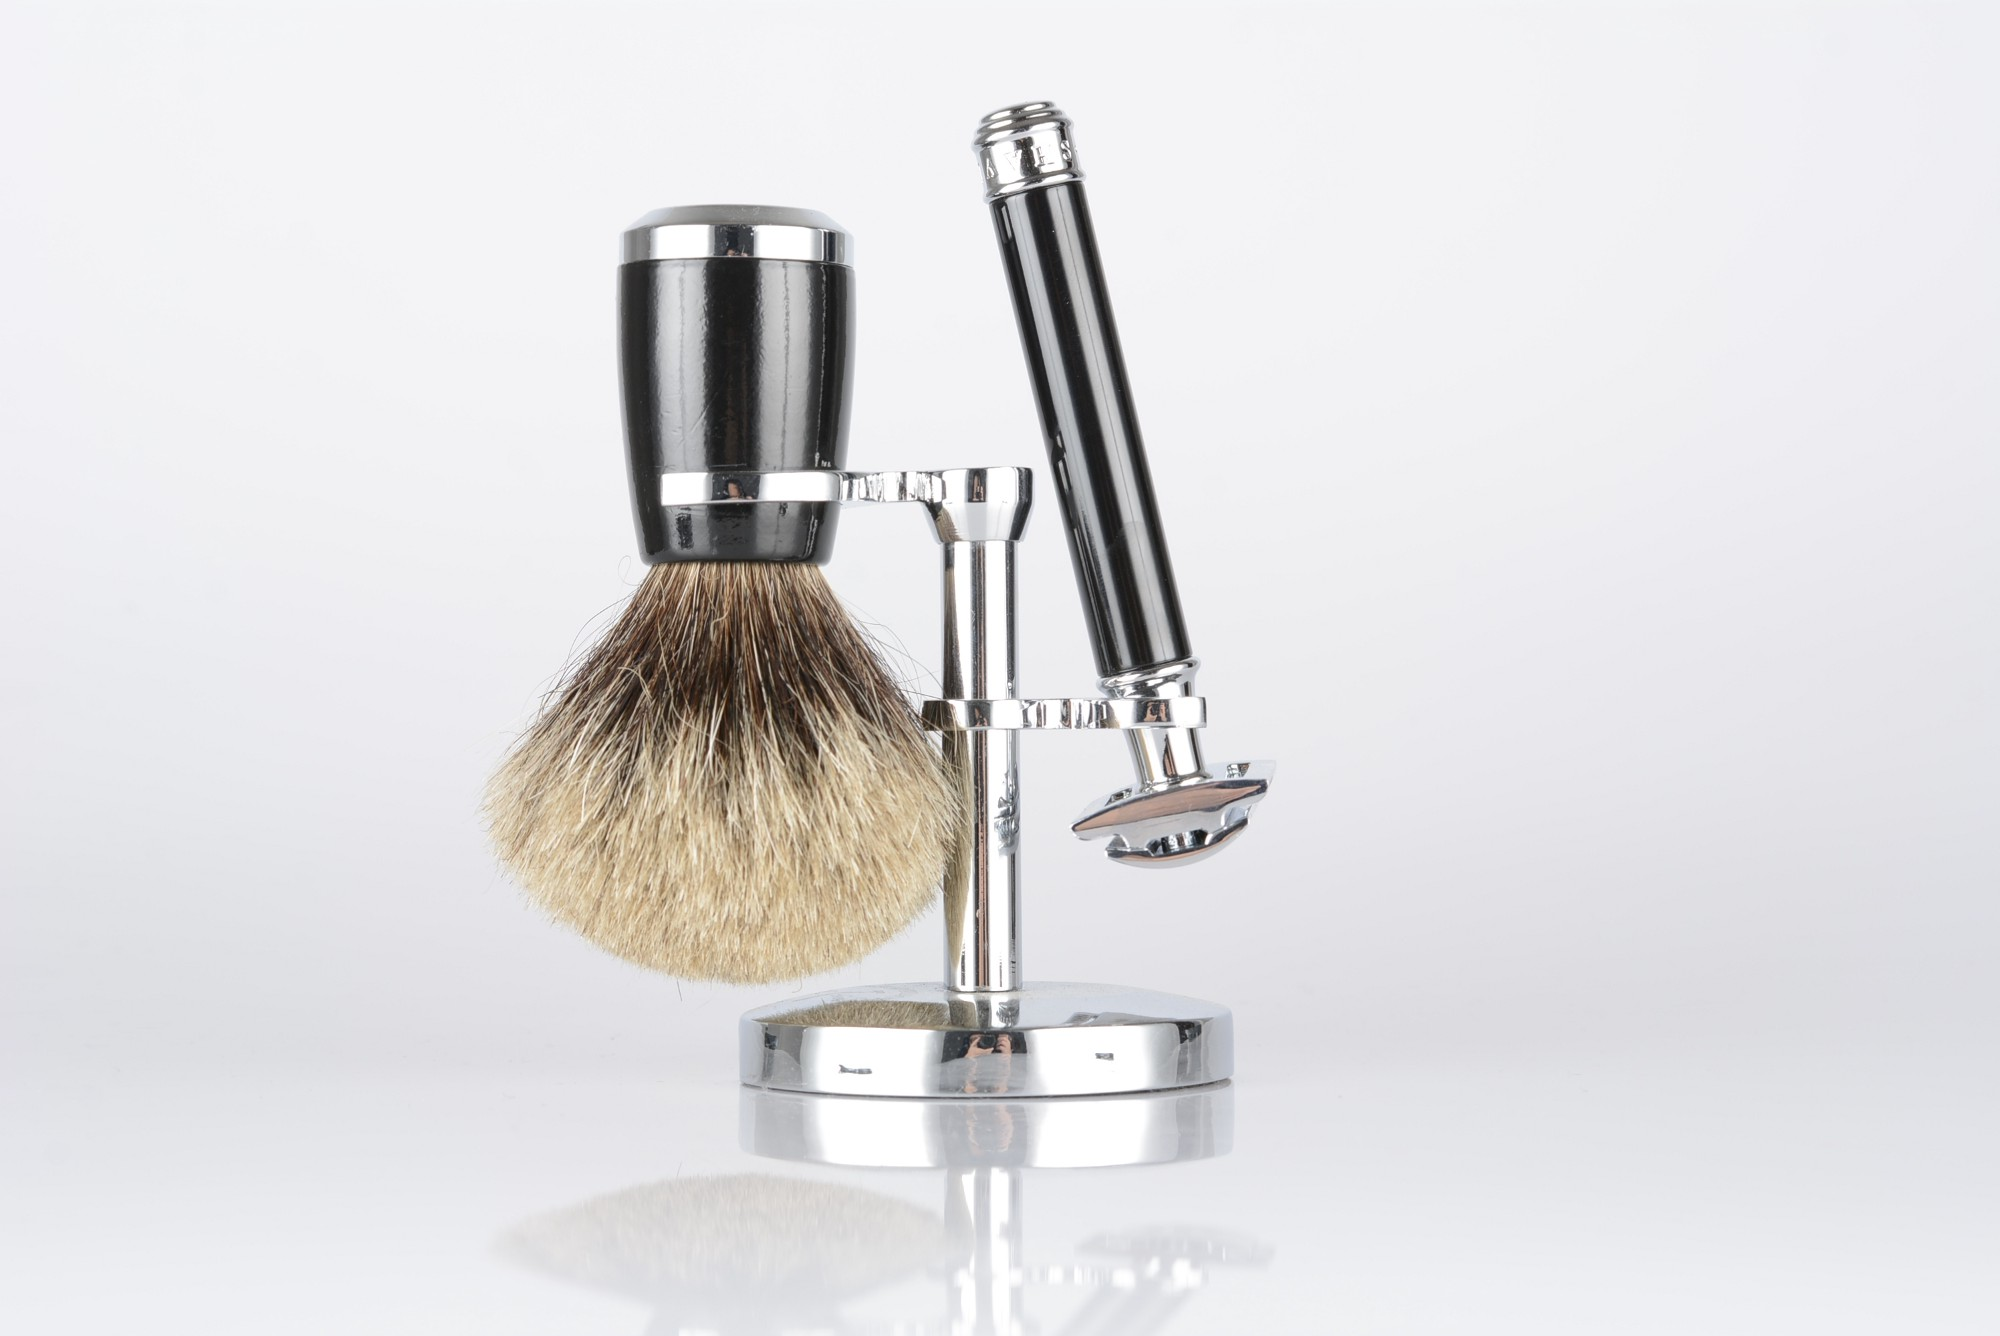 A razor and shaving cream brush on a stand